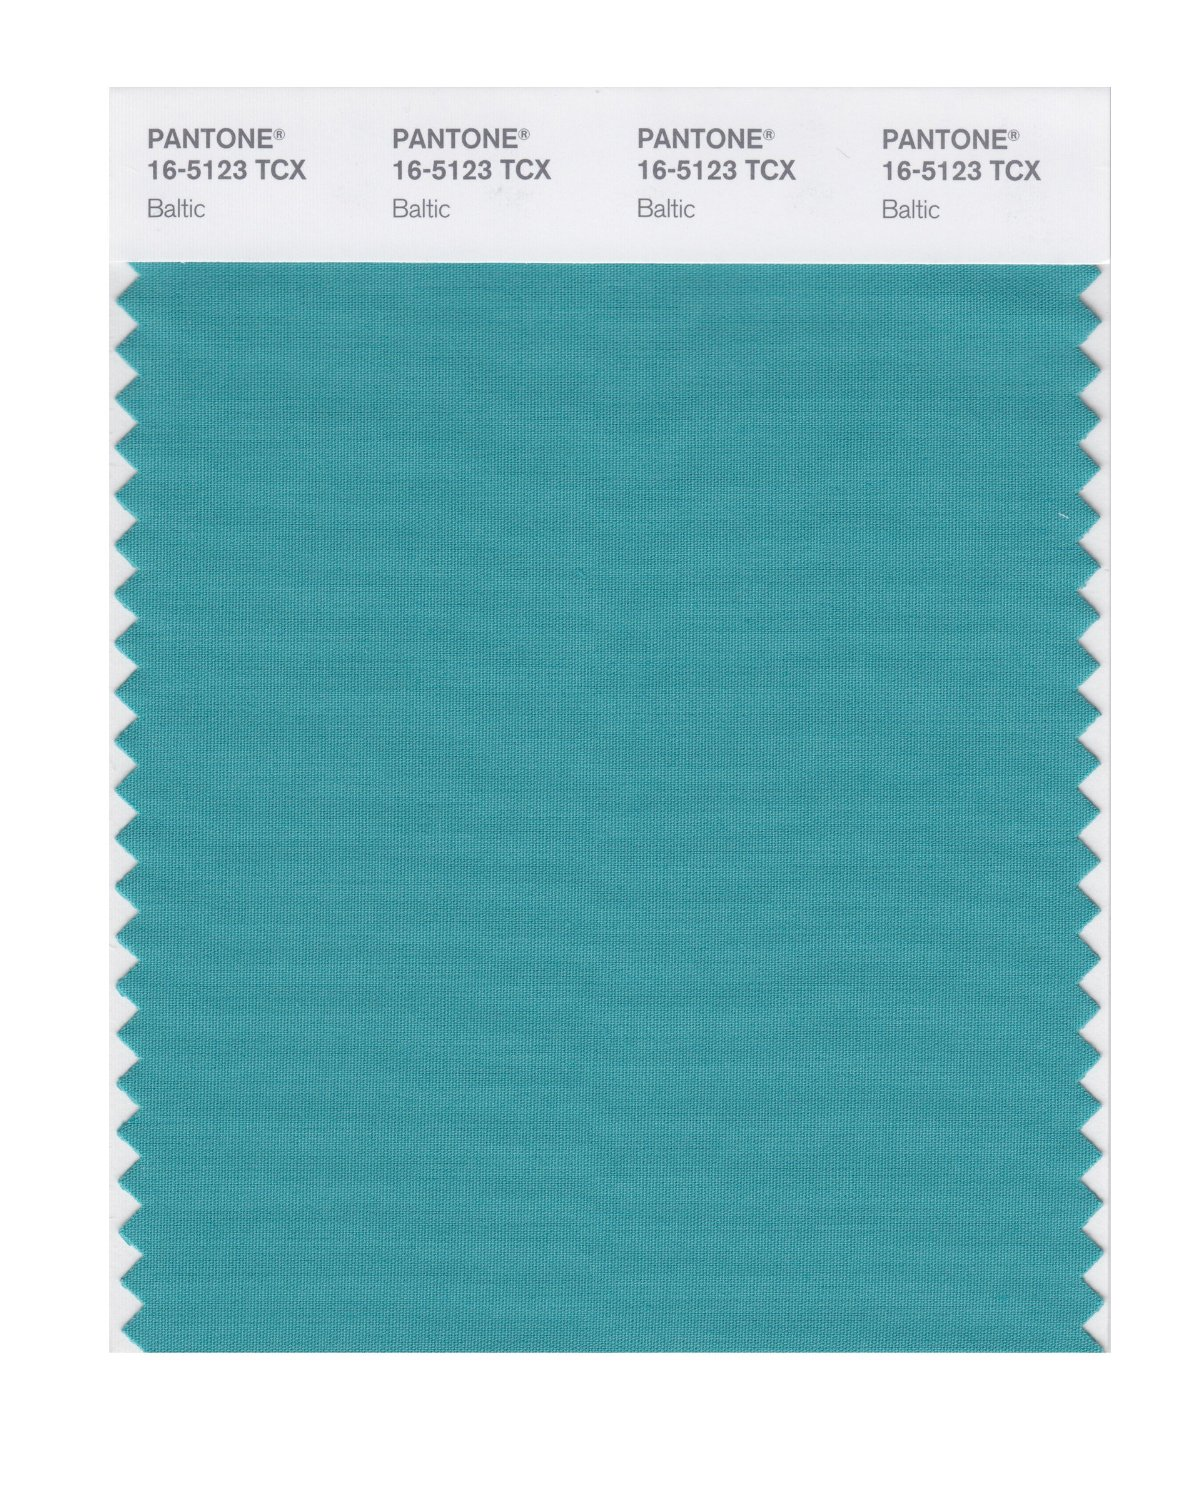 Pantone Smart Swatch 16-5123 Baltic